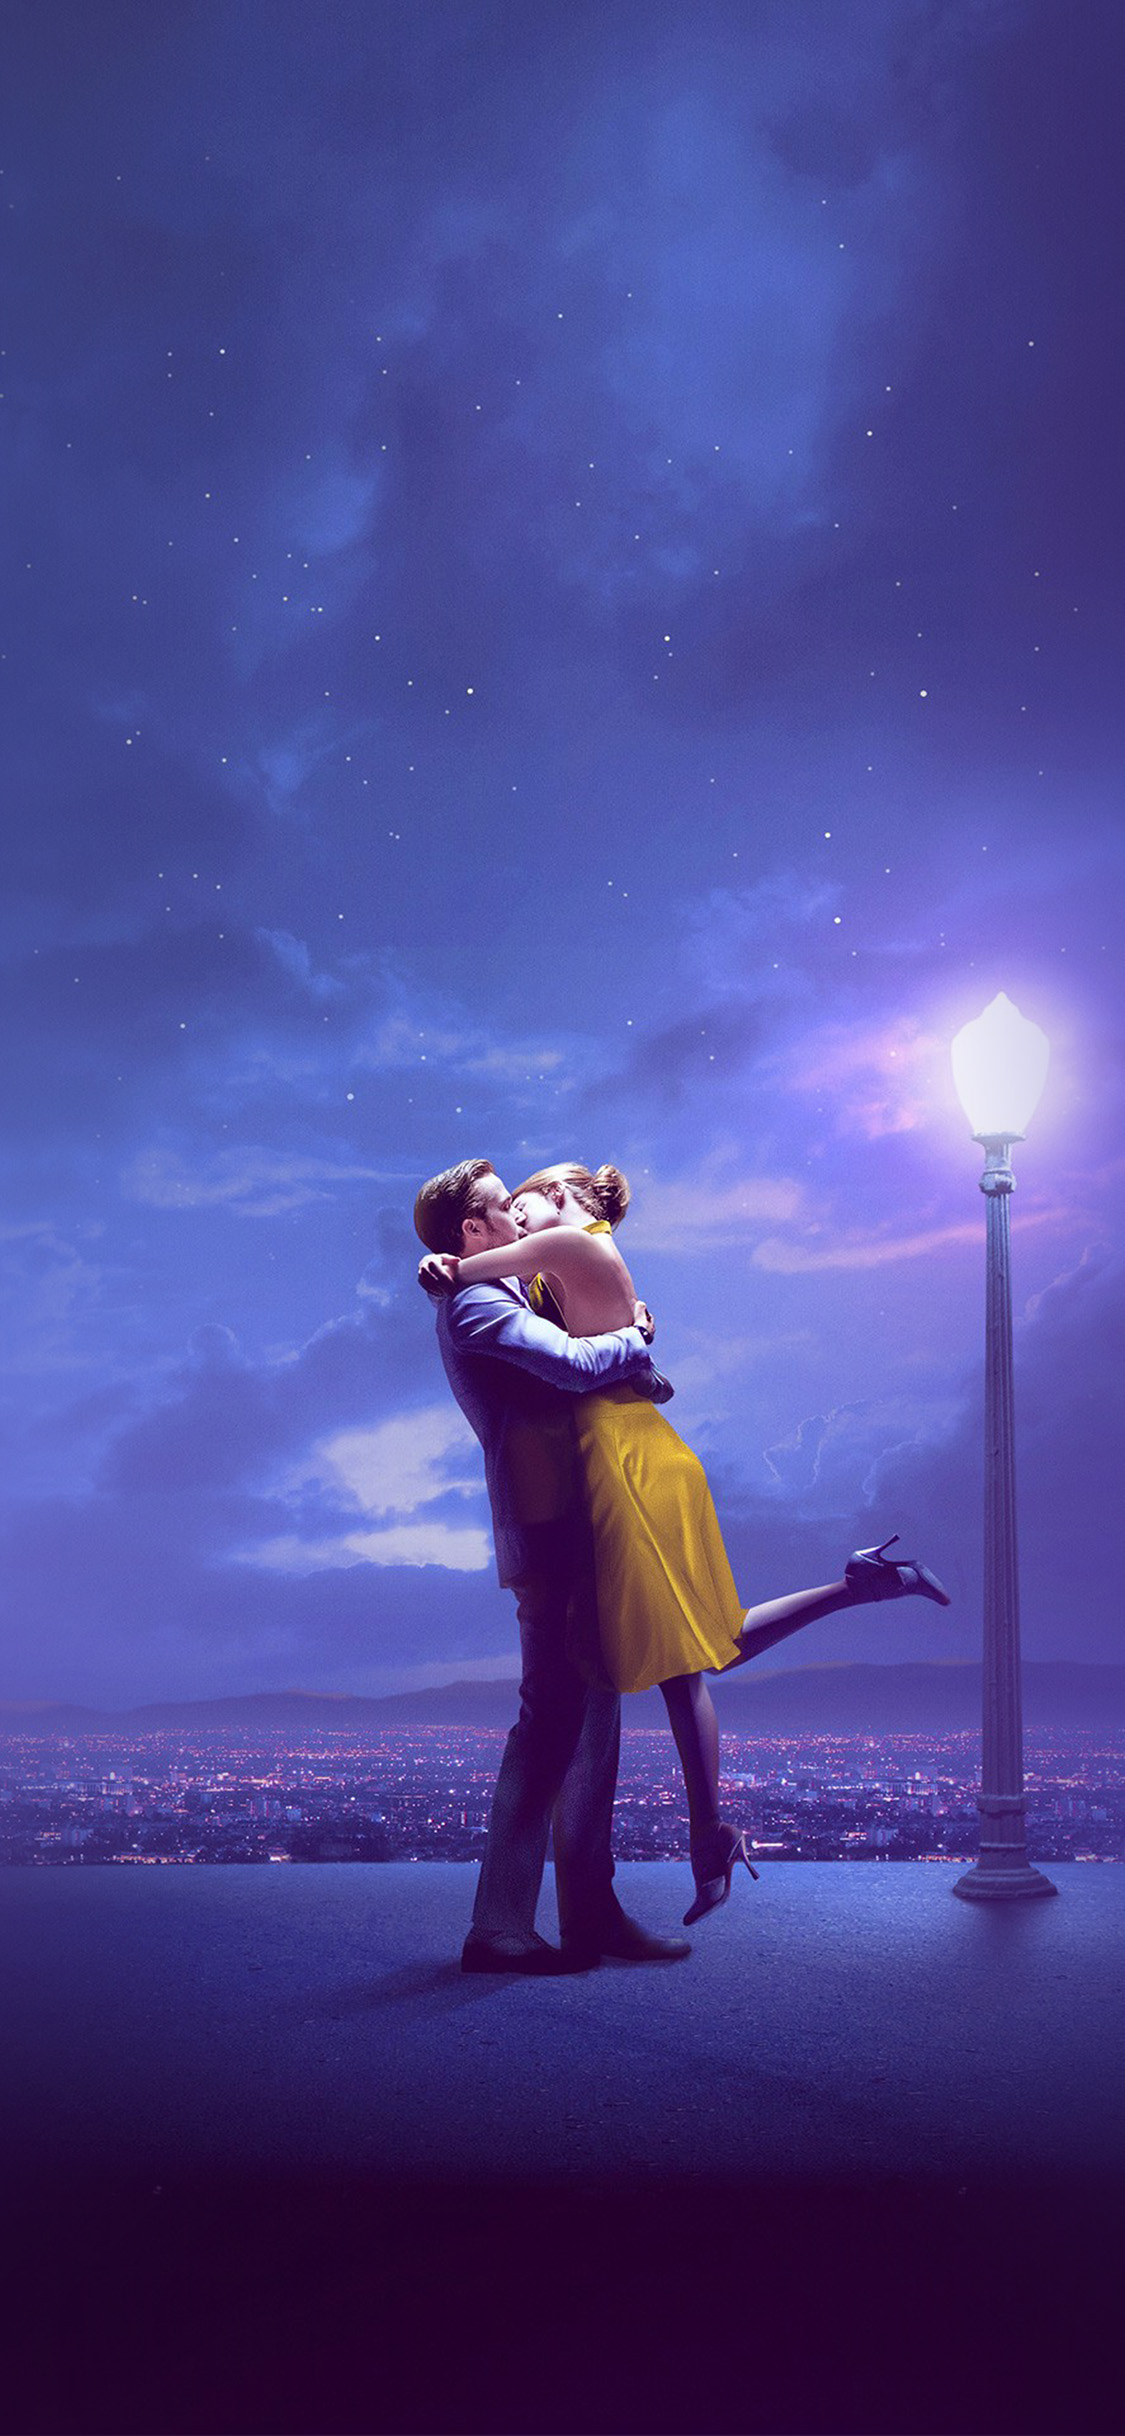 iPhonexpapers.com-Apple-iPhone-wallpaper-bg30-lalaland-film-kiss-blue-art